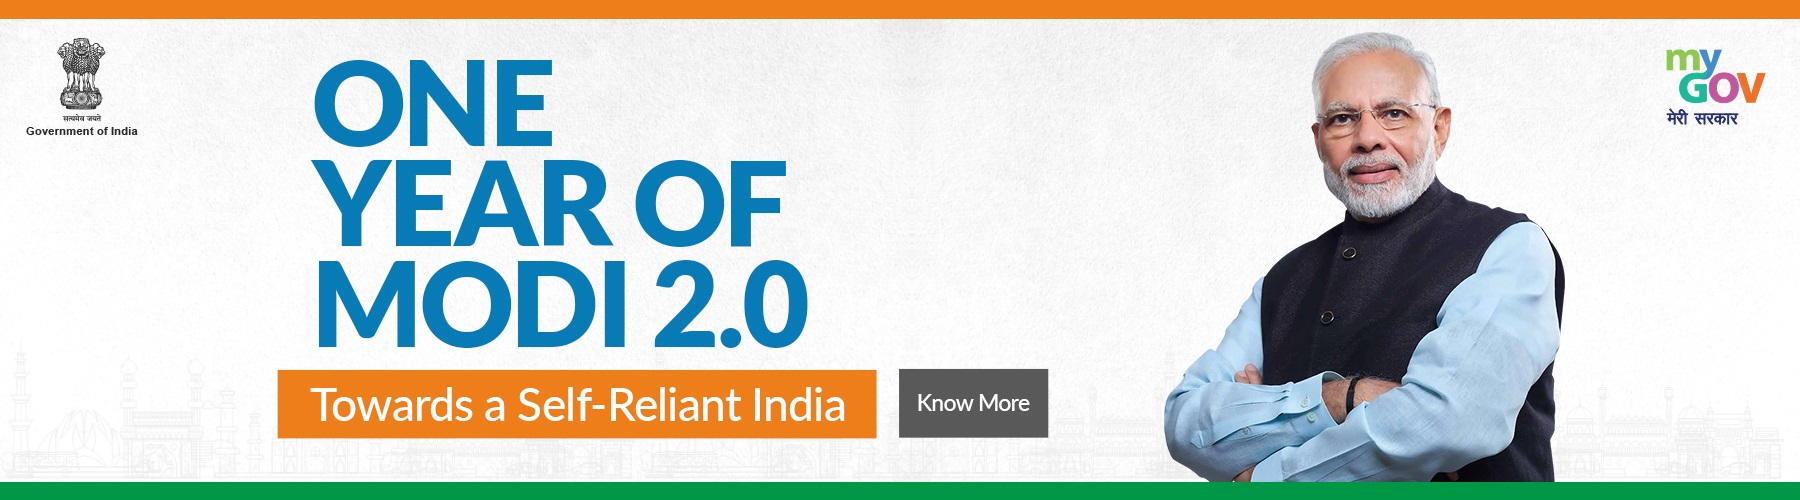 E-Book of One Year of Modi 2.0